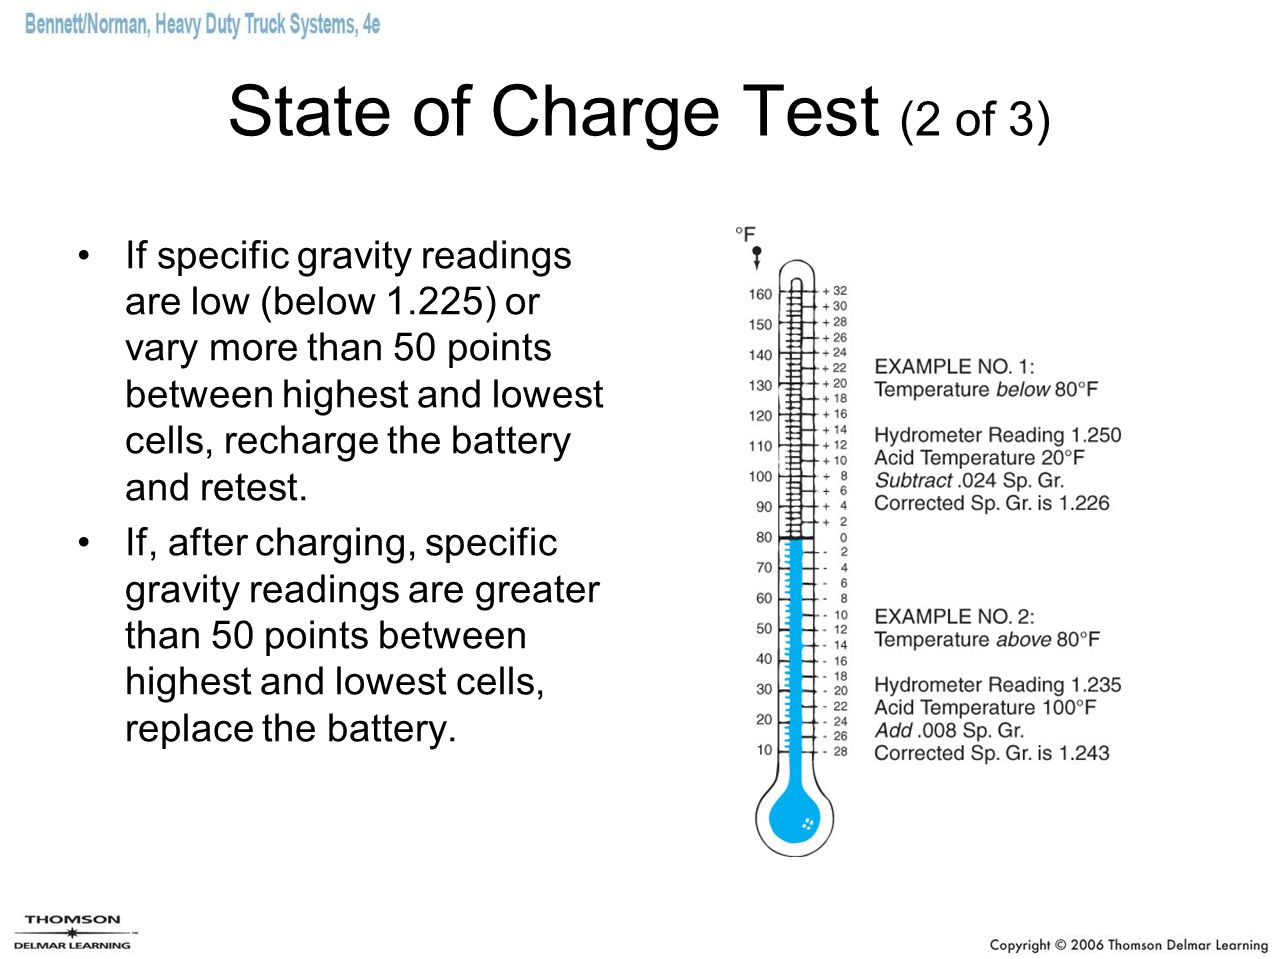 State of Charge Test (2 of 3)